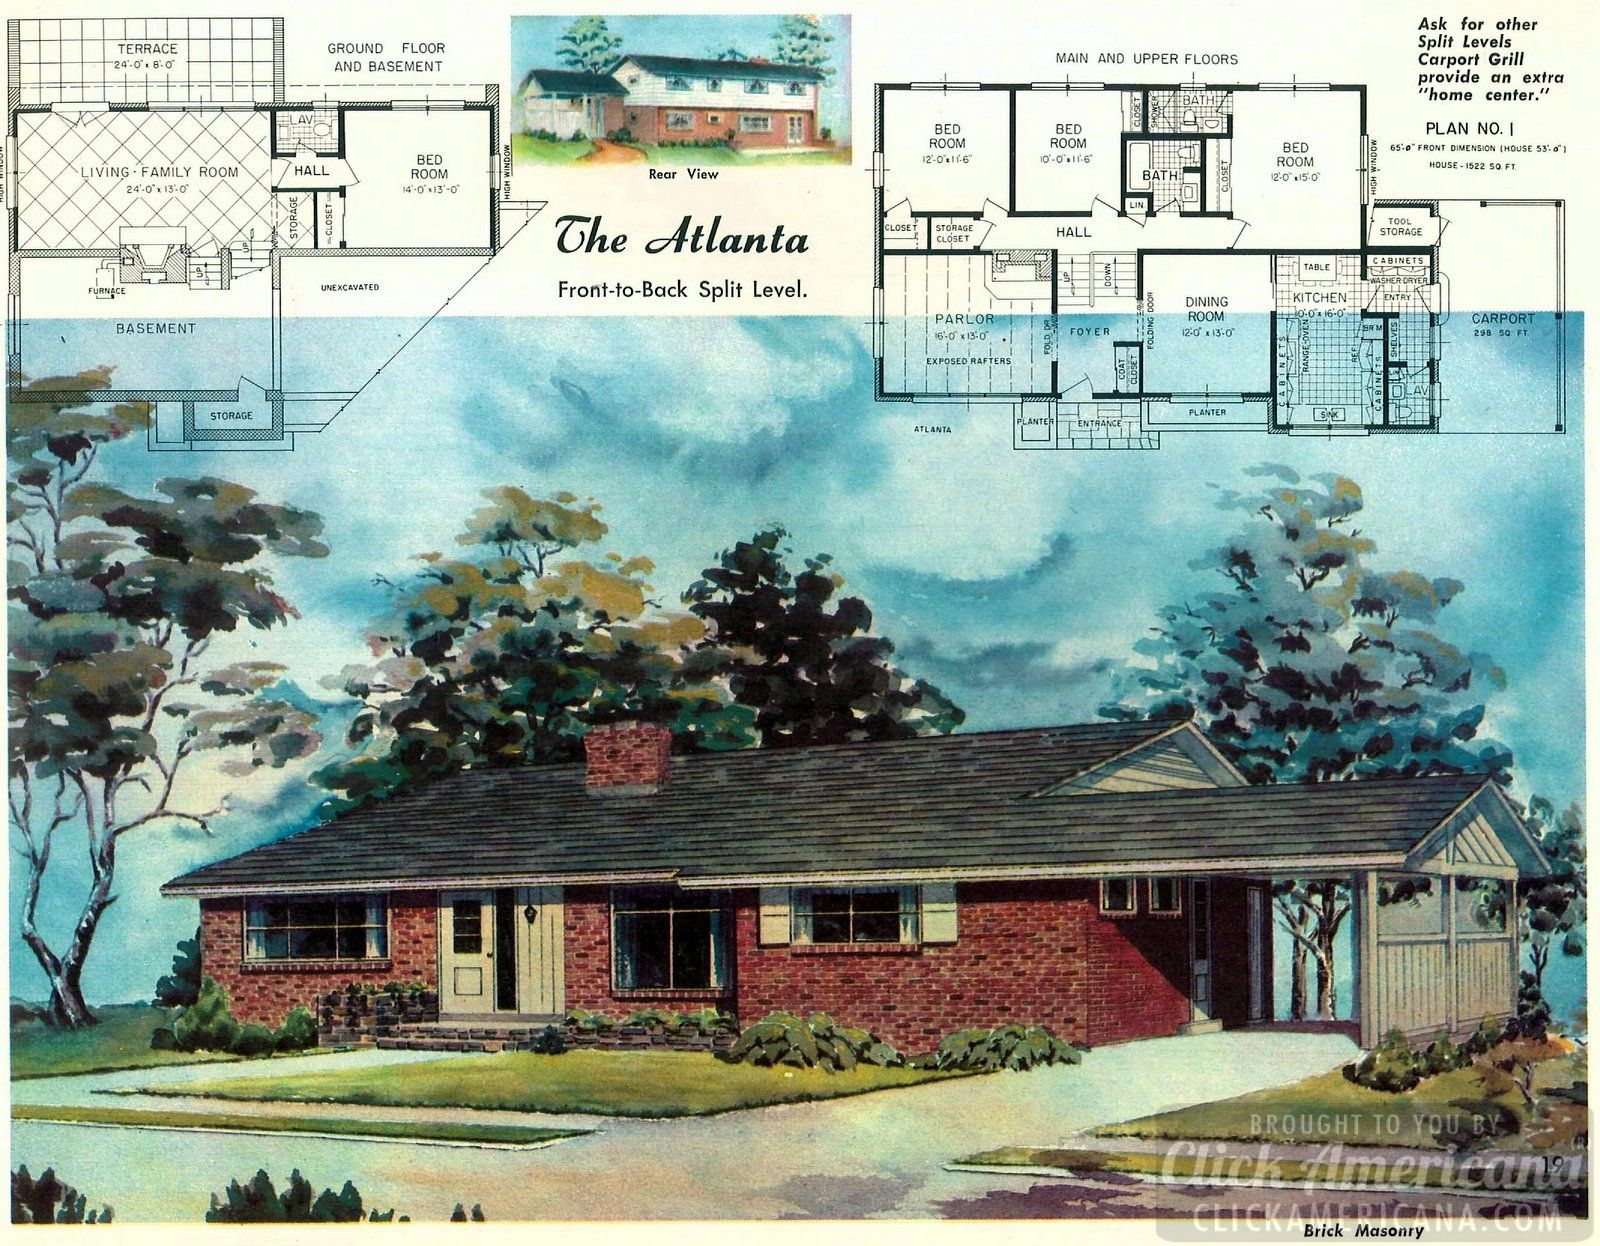 The Atlanta Split Level Home Plans From 1958 Ranch House Floor Plans Brick Ranch House Plans Brick House Plans